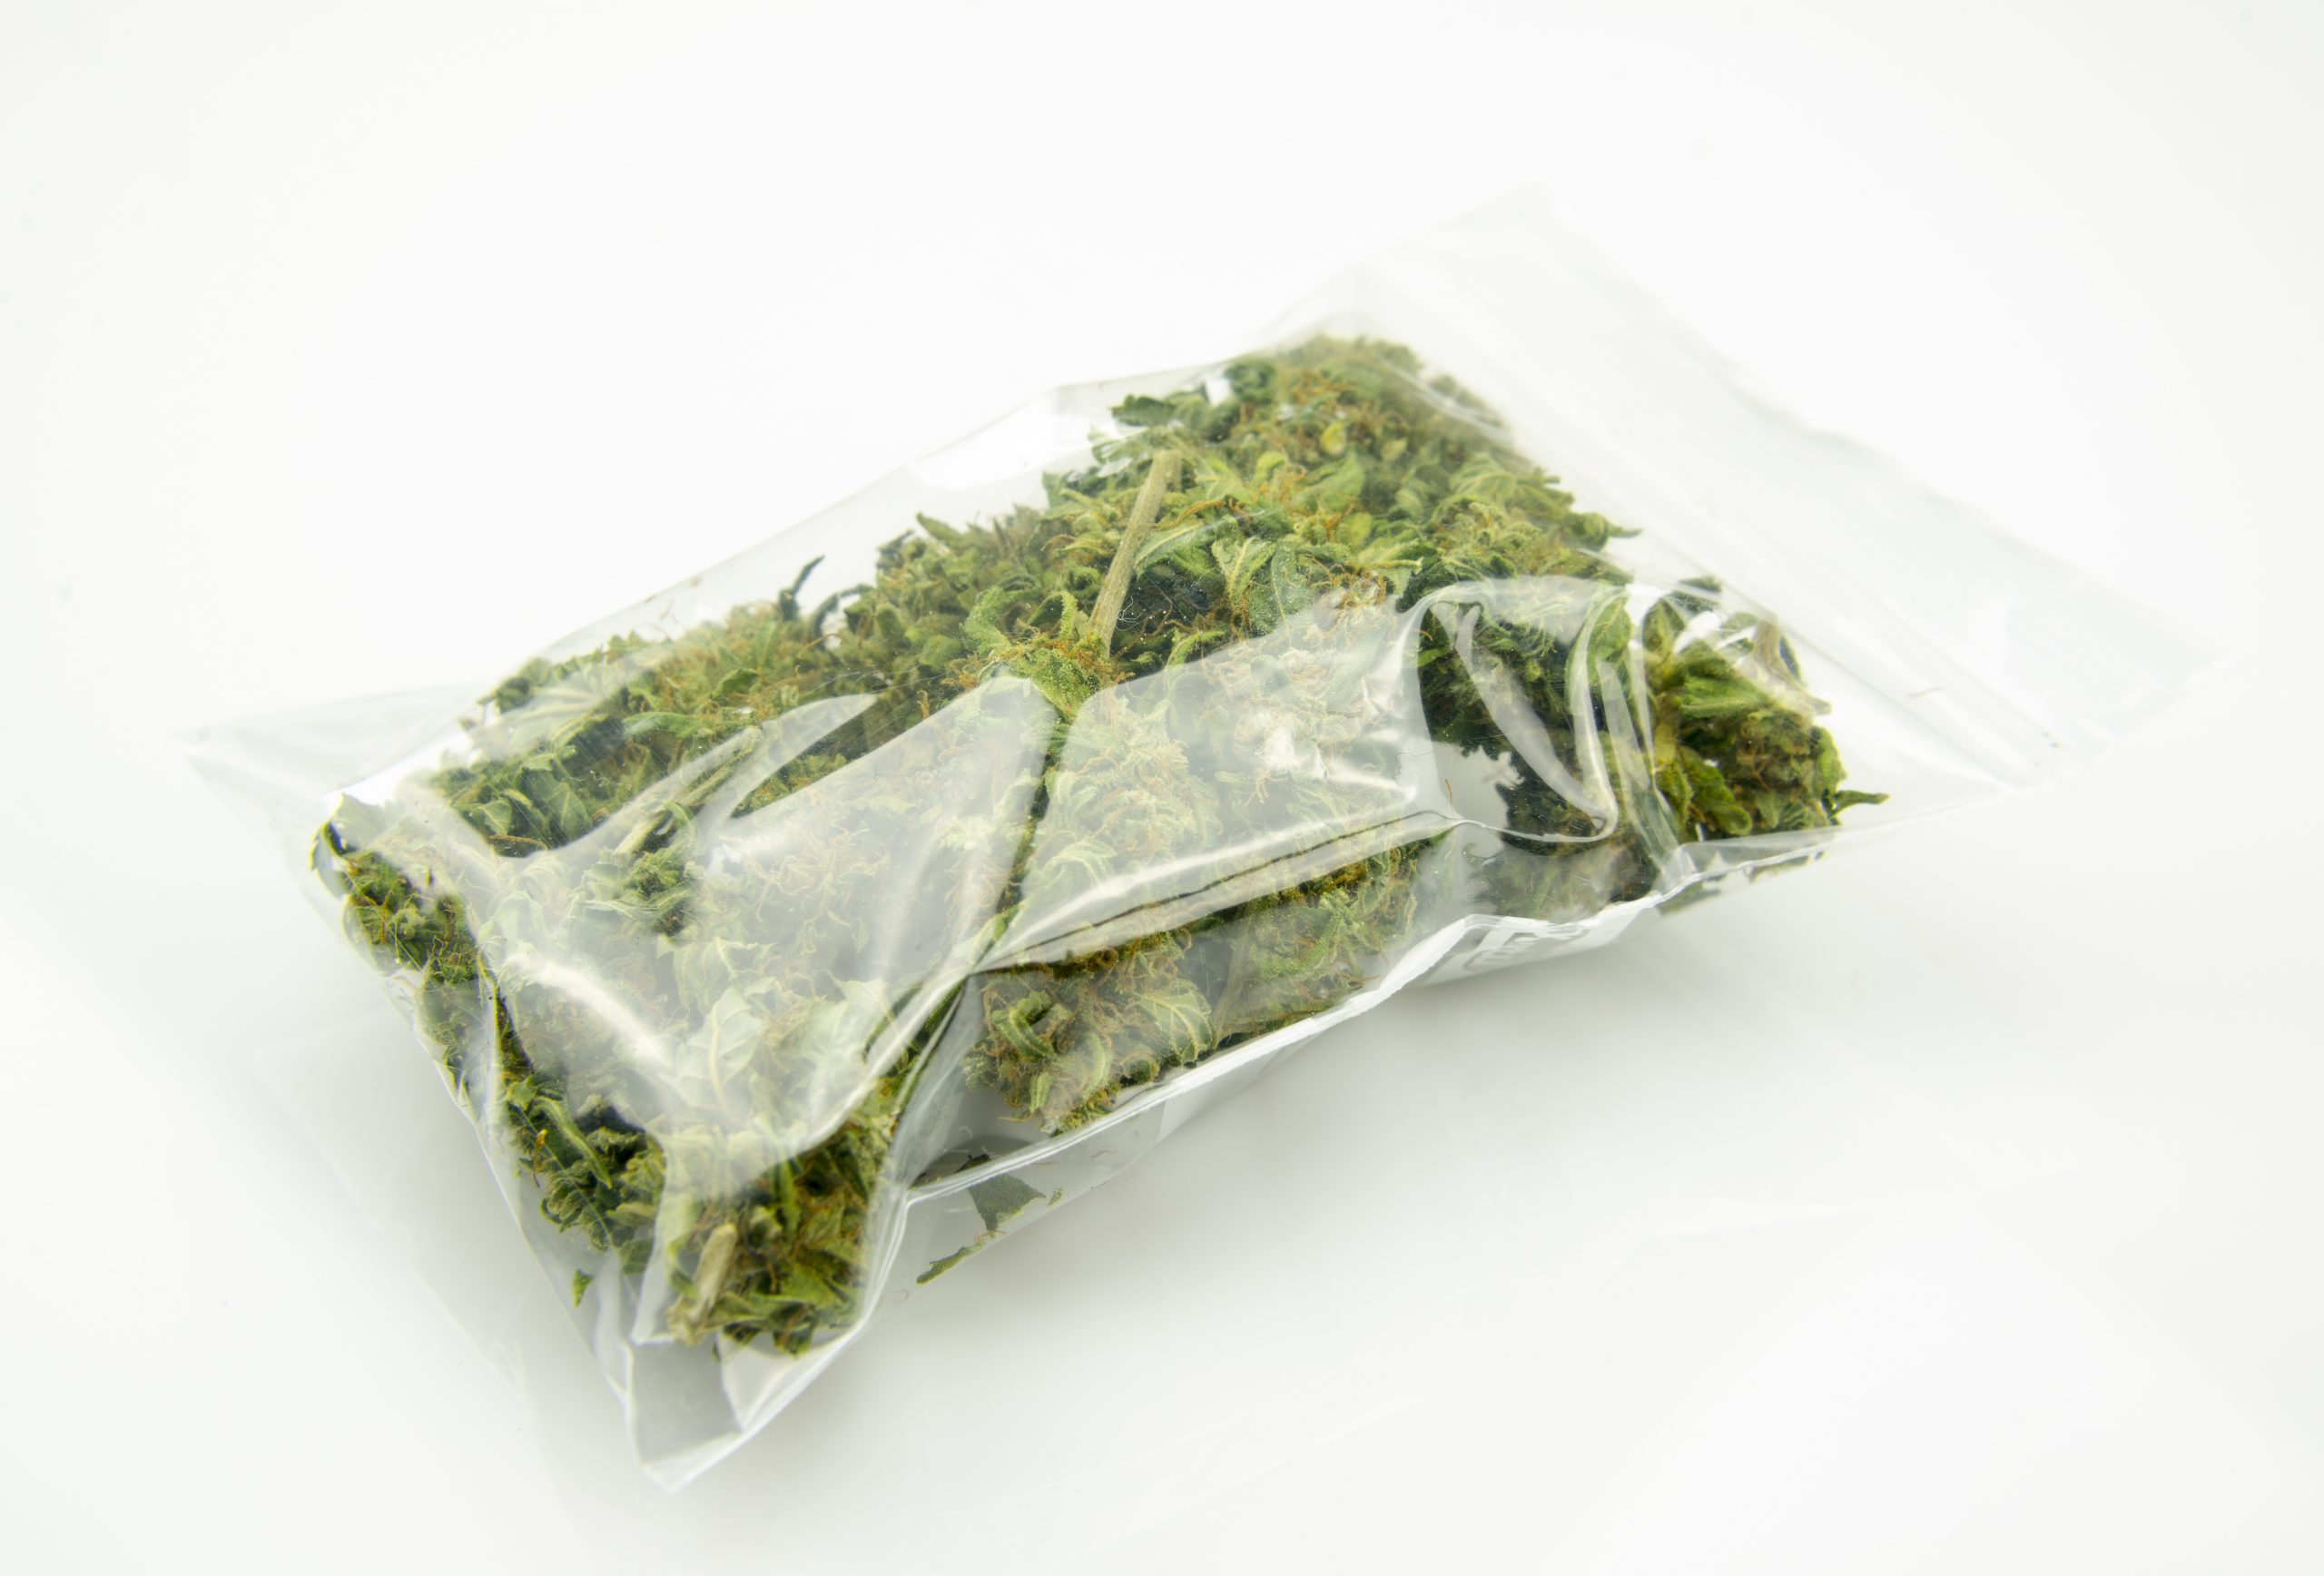 High Time for Legal Weed Companies to Change Packaging Practices: Consumers